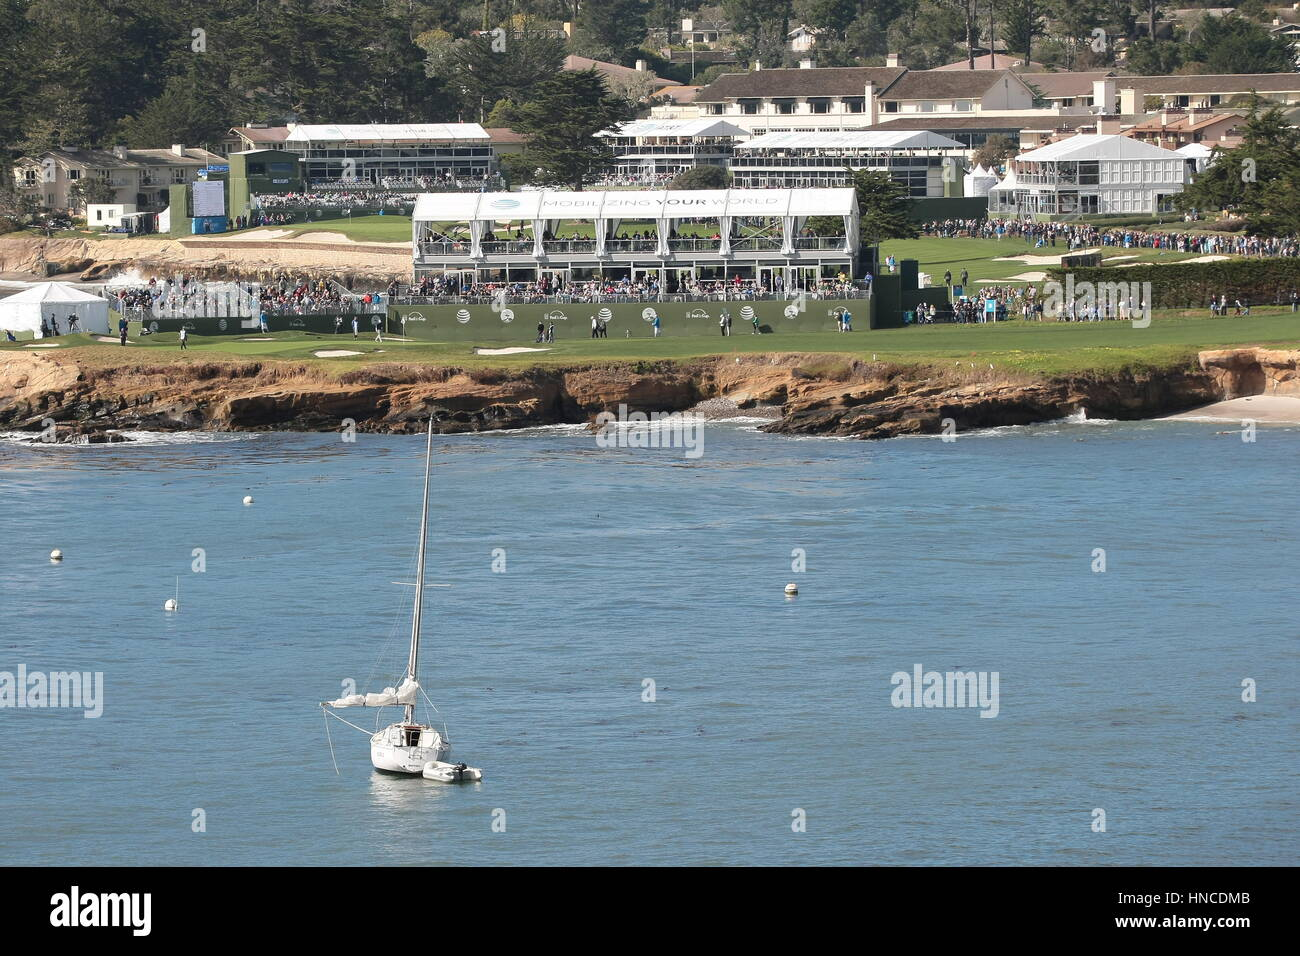 Pebble Beach, USA. 11th Feb, 2017. Pebble Beach, California, USA Pebble Beach links during the famous AT&T Pro-Am, Stock Photo